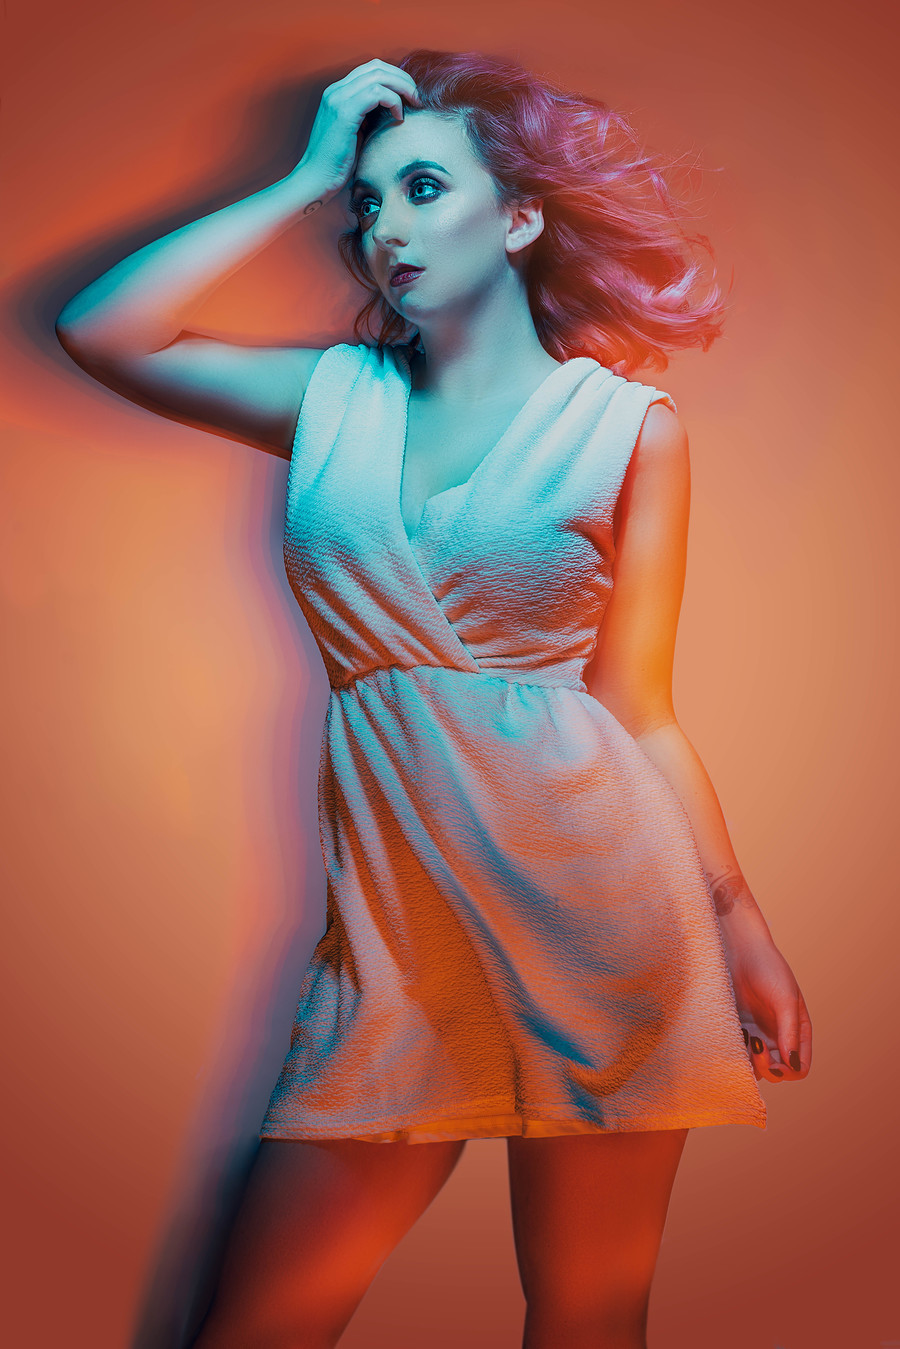 Orange / Photography by David Abbs, Model PJ Elise, Makeup by Make Up With LRN, Taken at Shutter House / Uploaded 20th February 2019 @ 07:36 PM